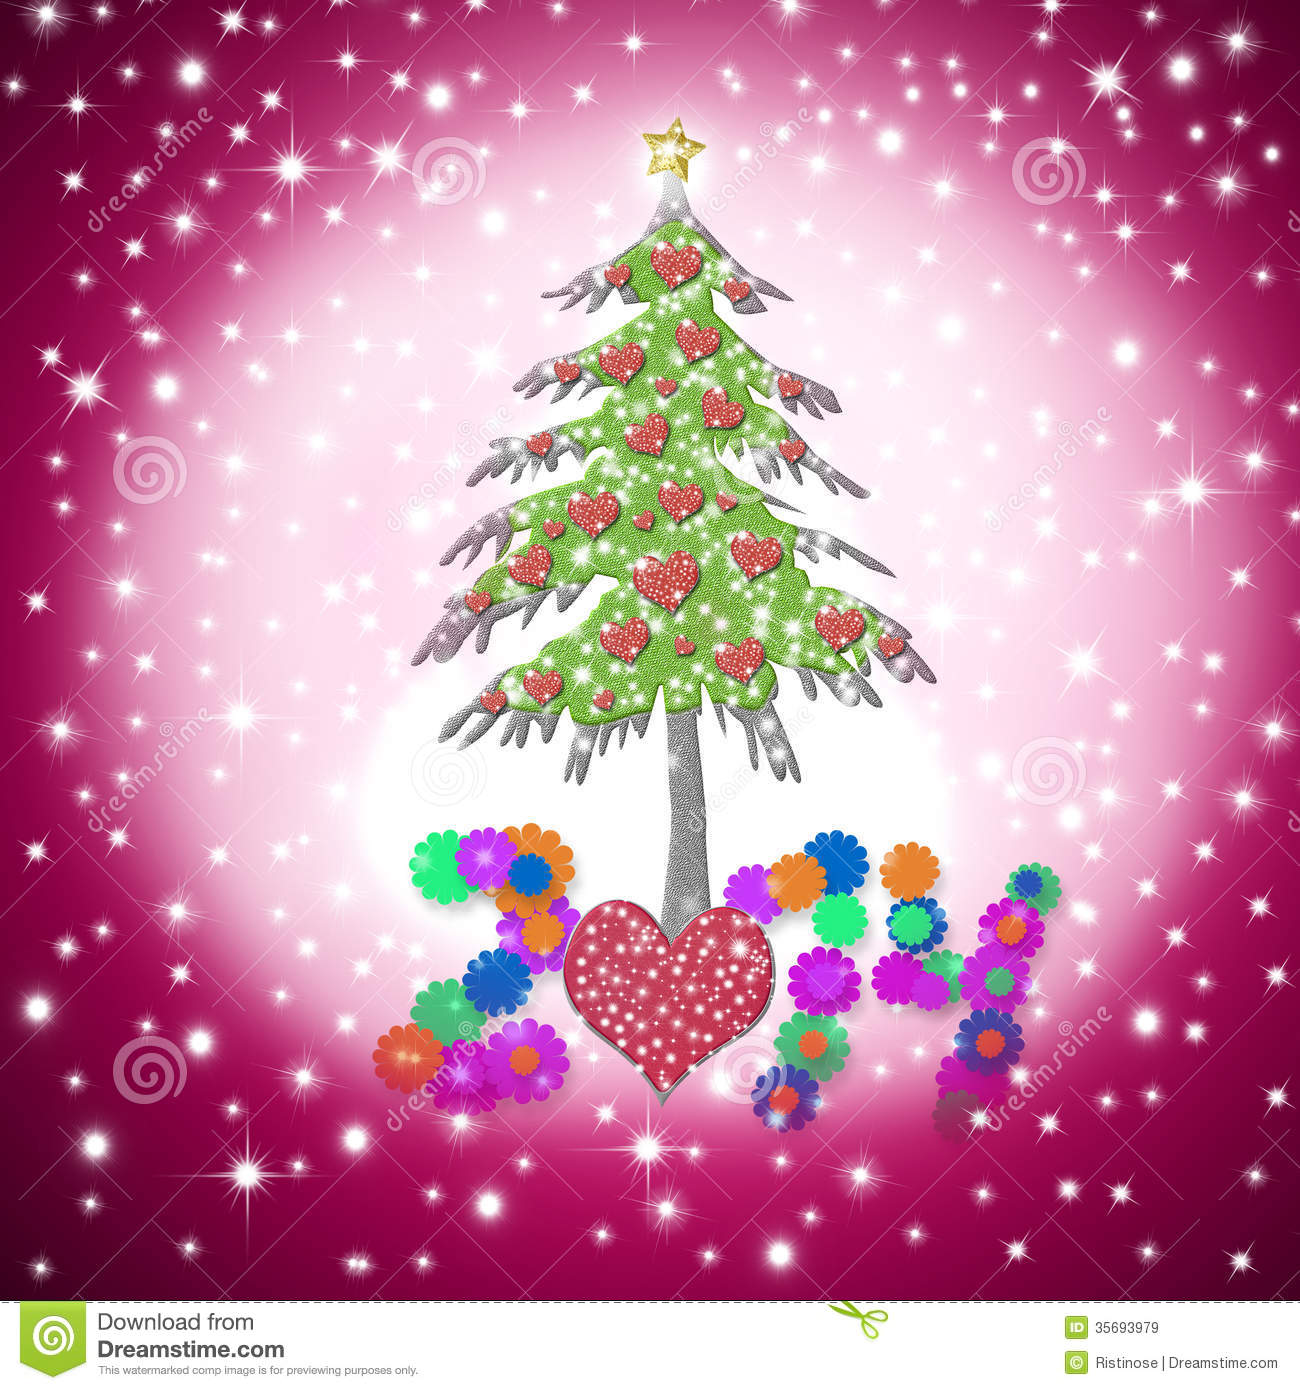 Lovely child christmas greeting card 2014 stock illustration lovely child christmas greeting card 2014 m4hsunfo